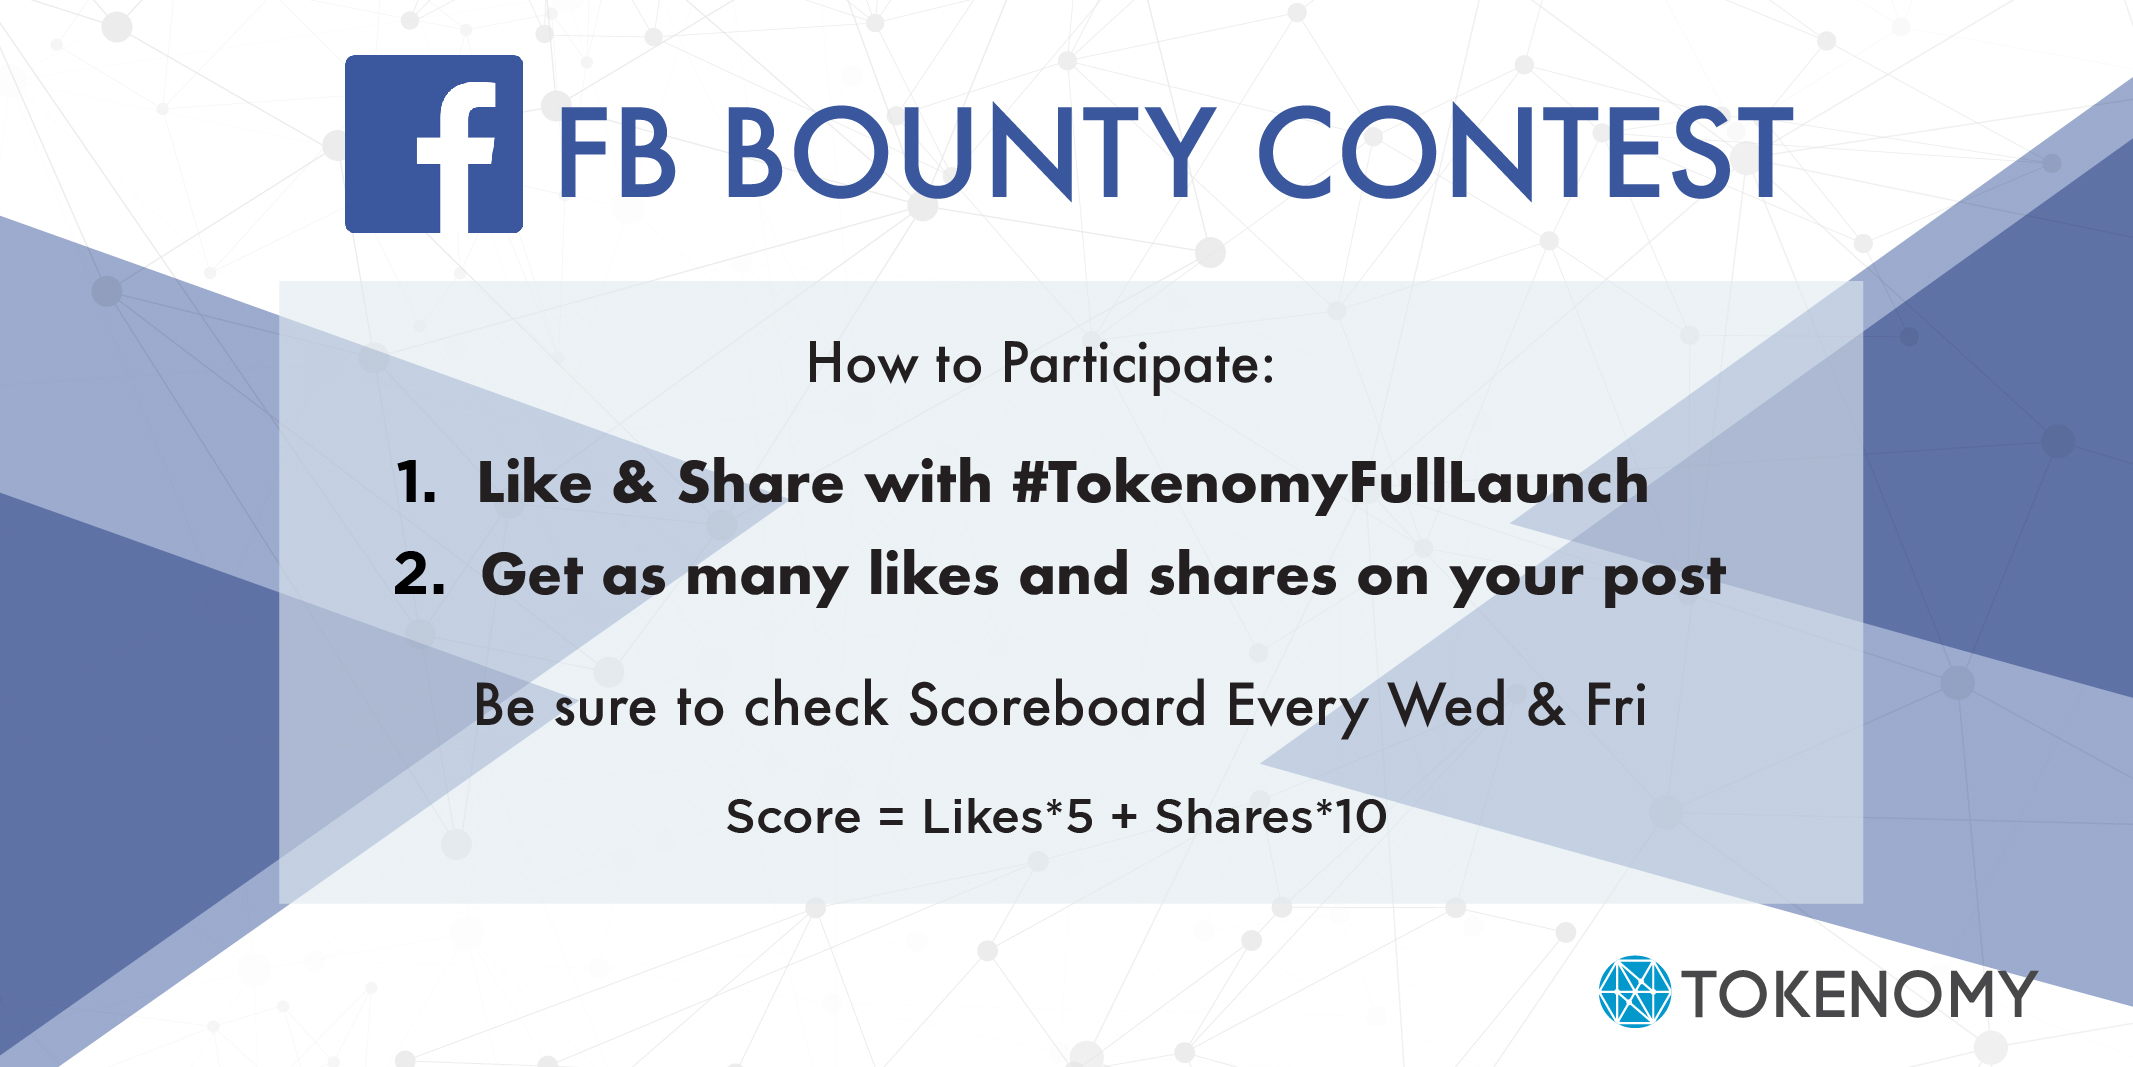 3bdc624e7523 Tokenomy Full Launch FB Bounty Contest Now Open! – Tokenomy – Medium